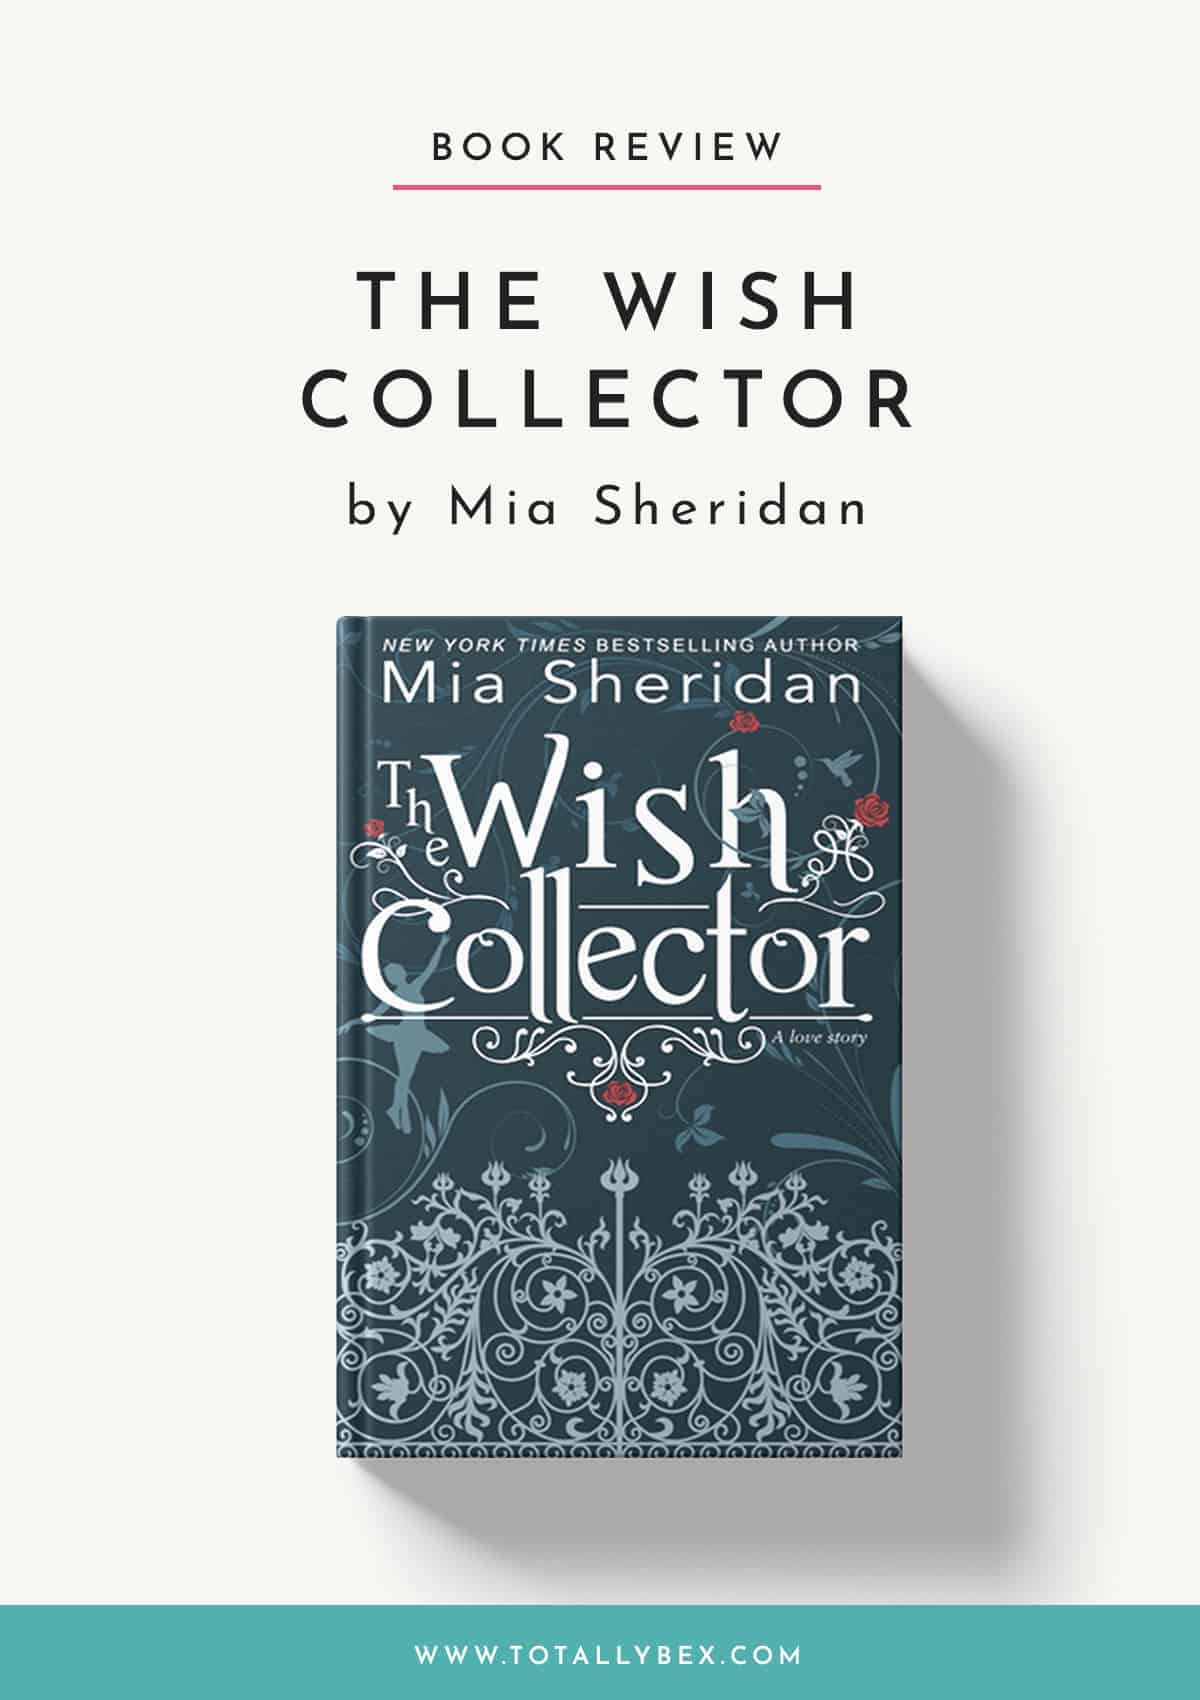 The Wish Collector by Mia Sheridan-Book Review